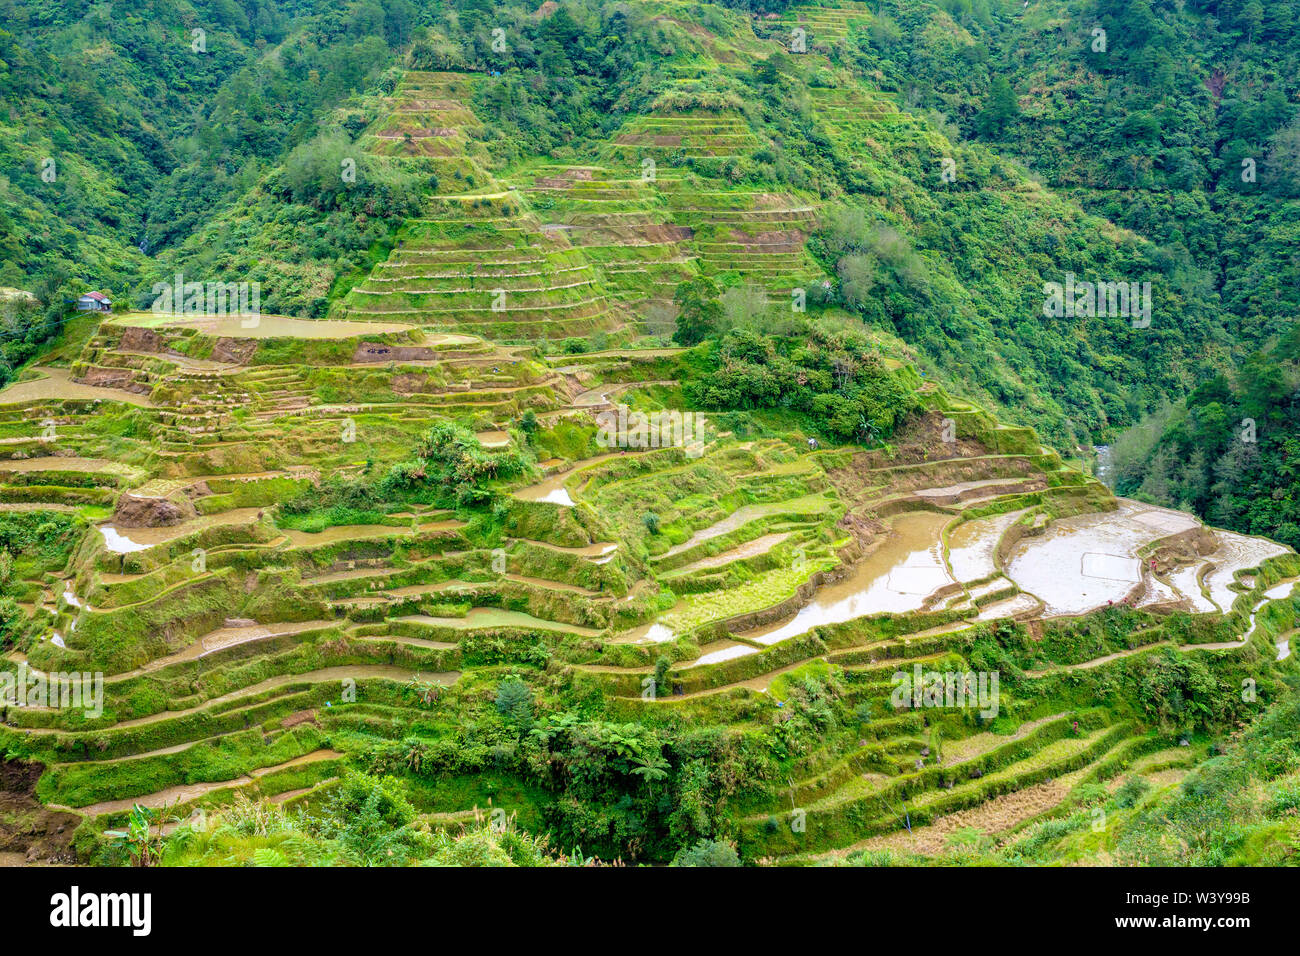 Banaue rice terraces in early spring, Mountain Province, Cordillera Administrative Region, Philippines Stock Photo